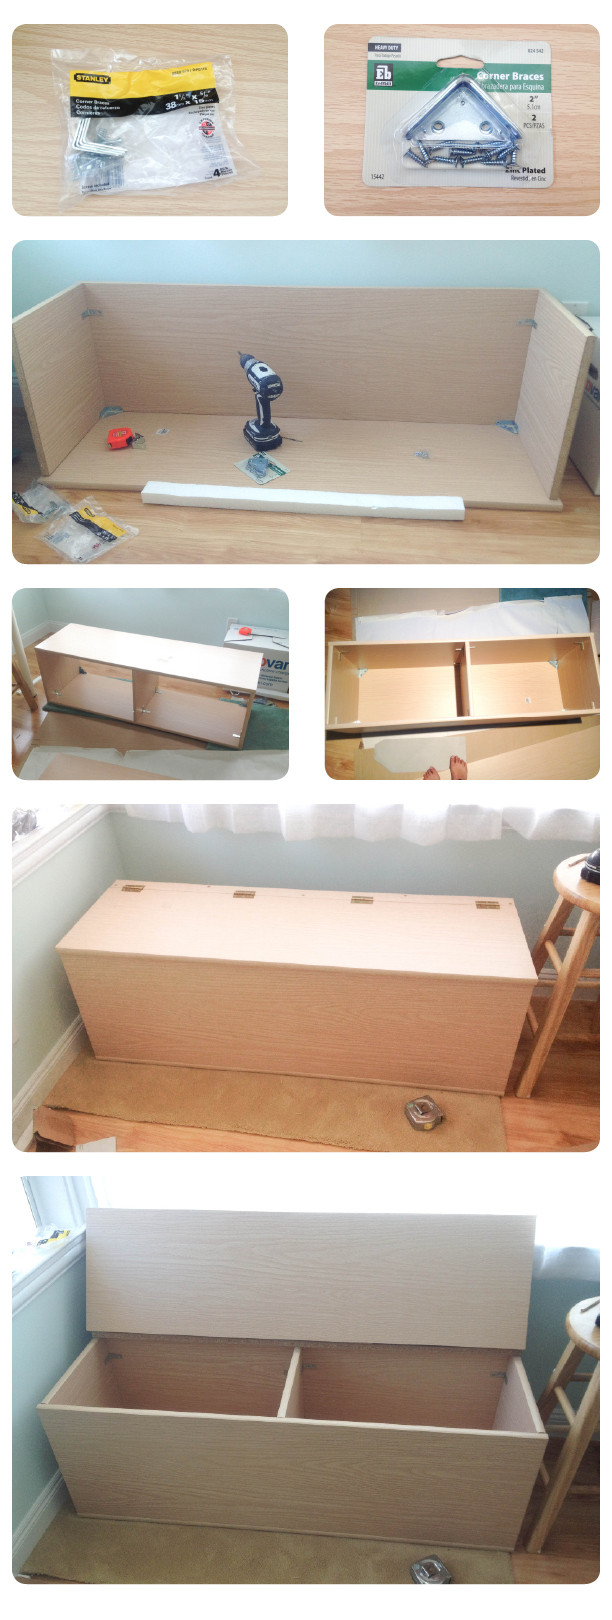 Best ideas about DIY Storage Bench . Save or Pin Deck Storage Bench Plans Free wooden bedroom designs DIY Now.